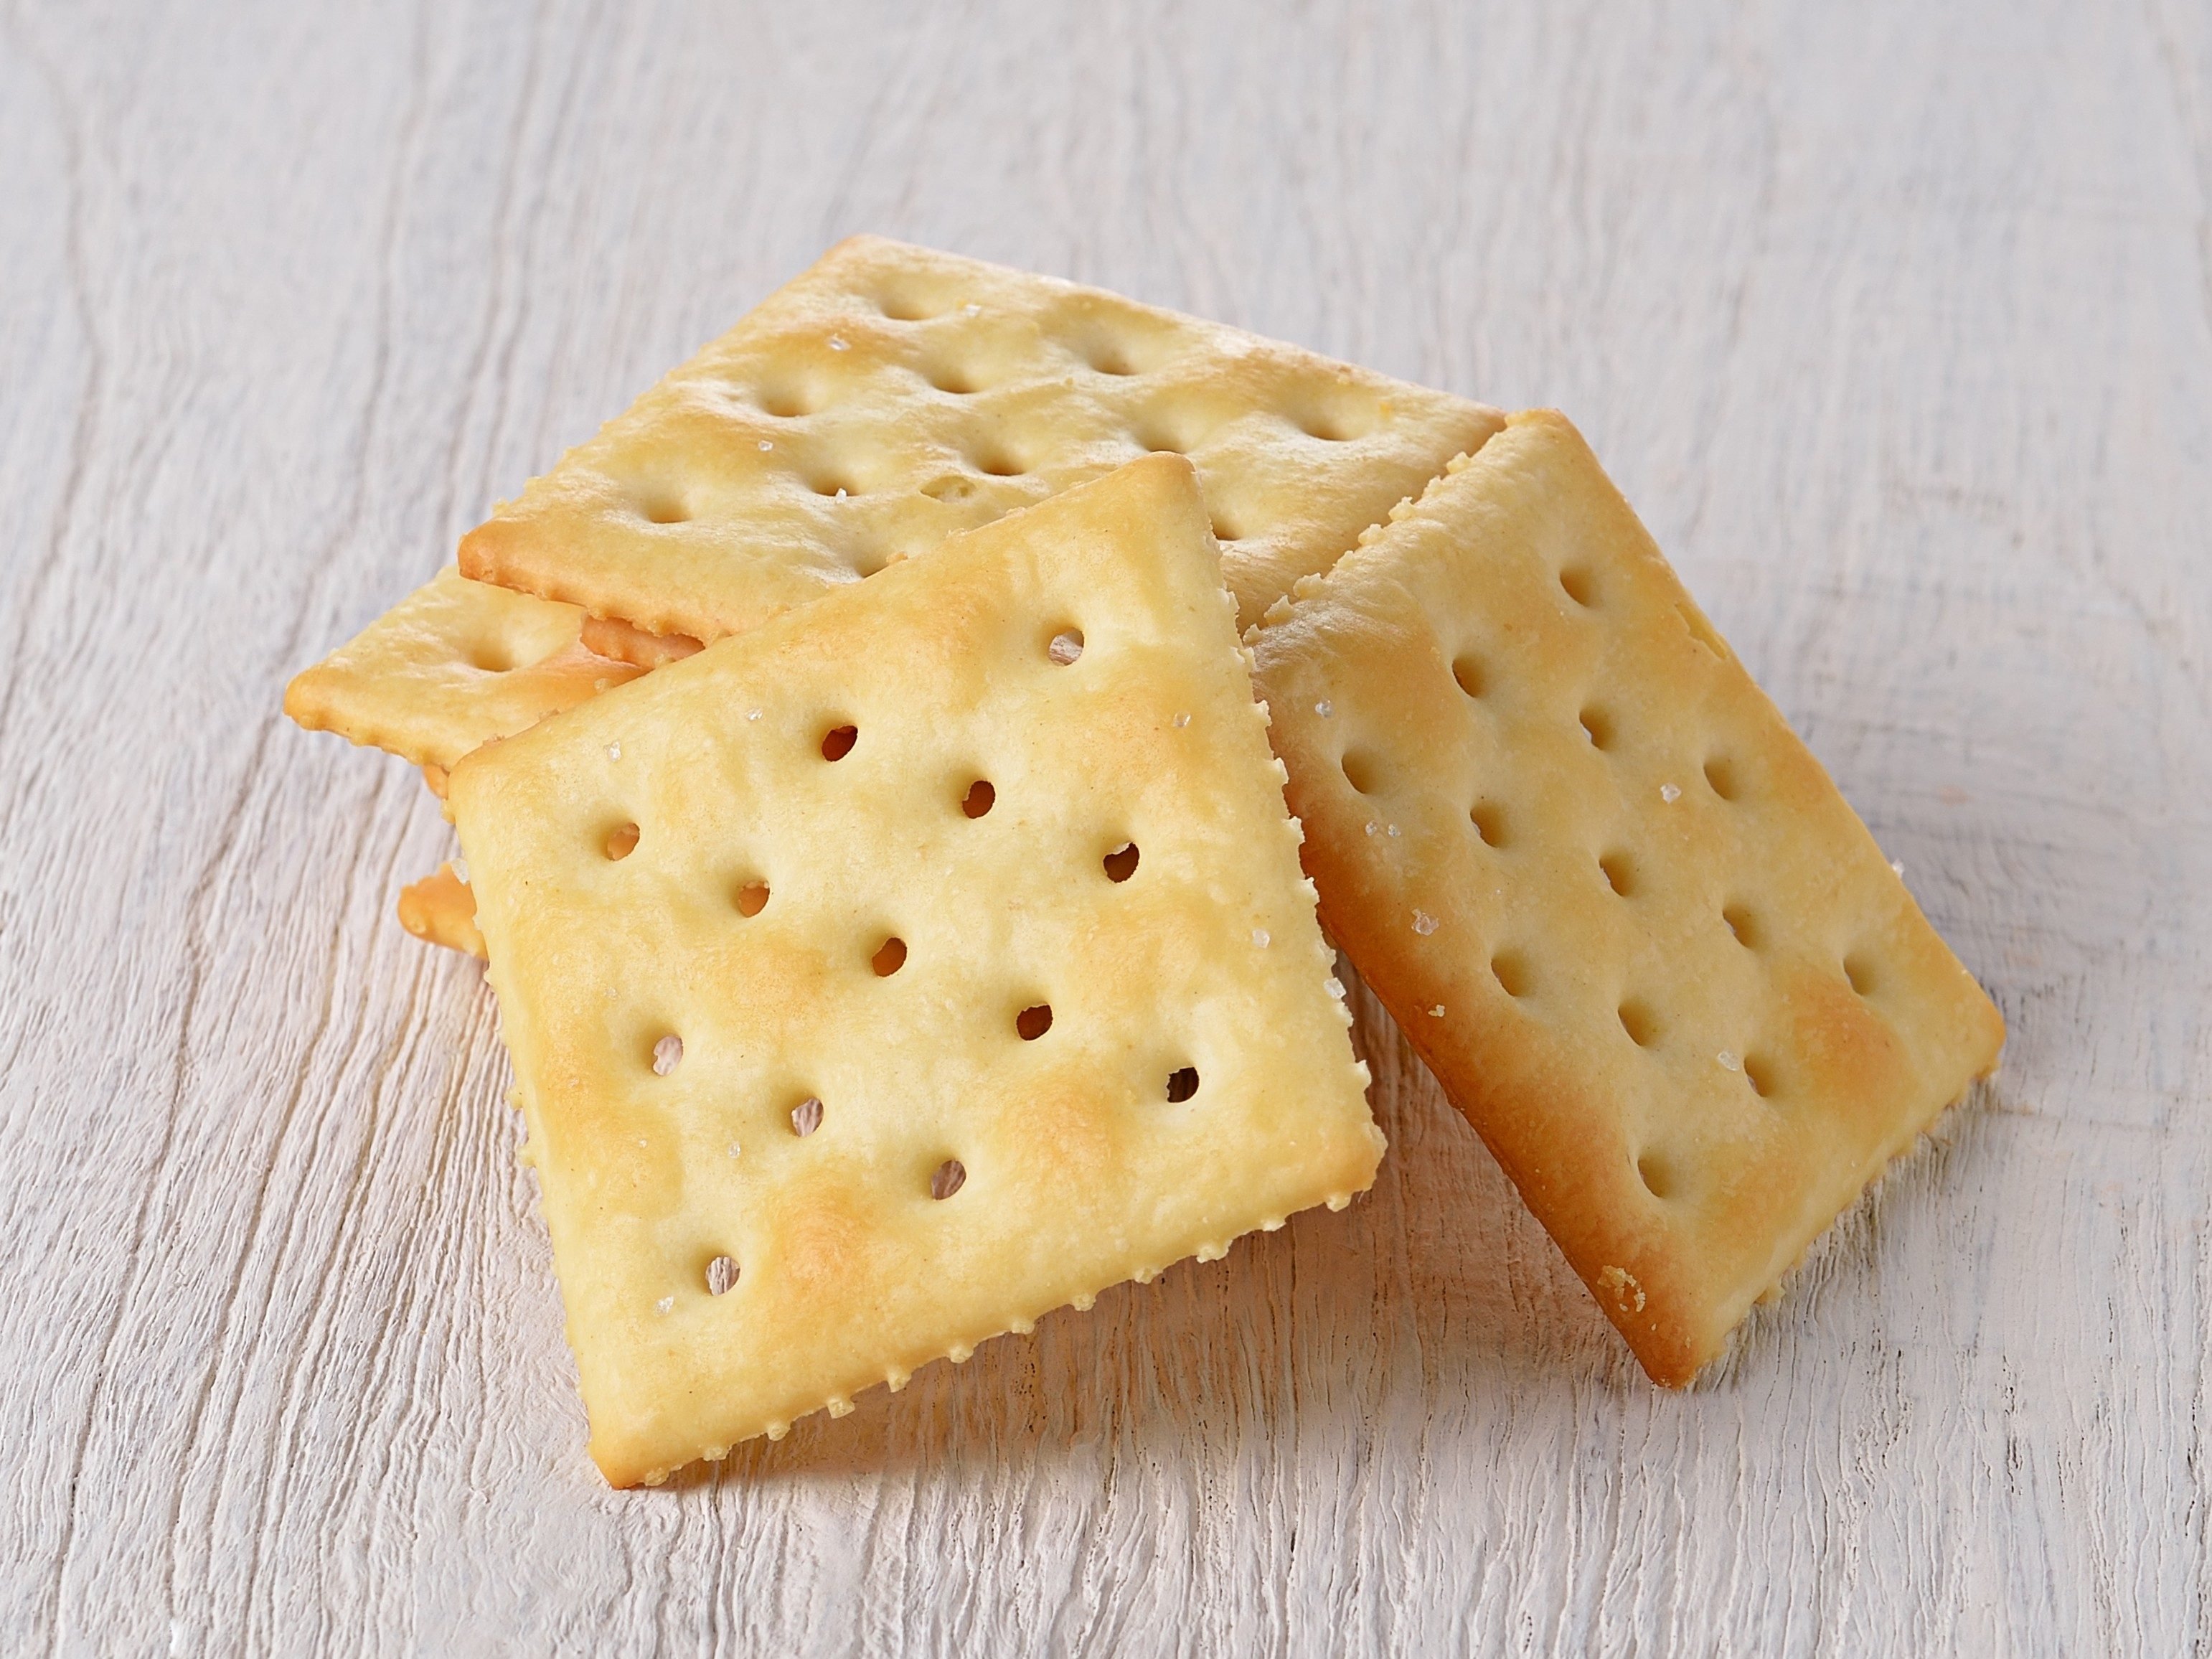 best crackers for nausea